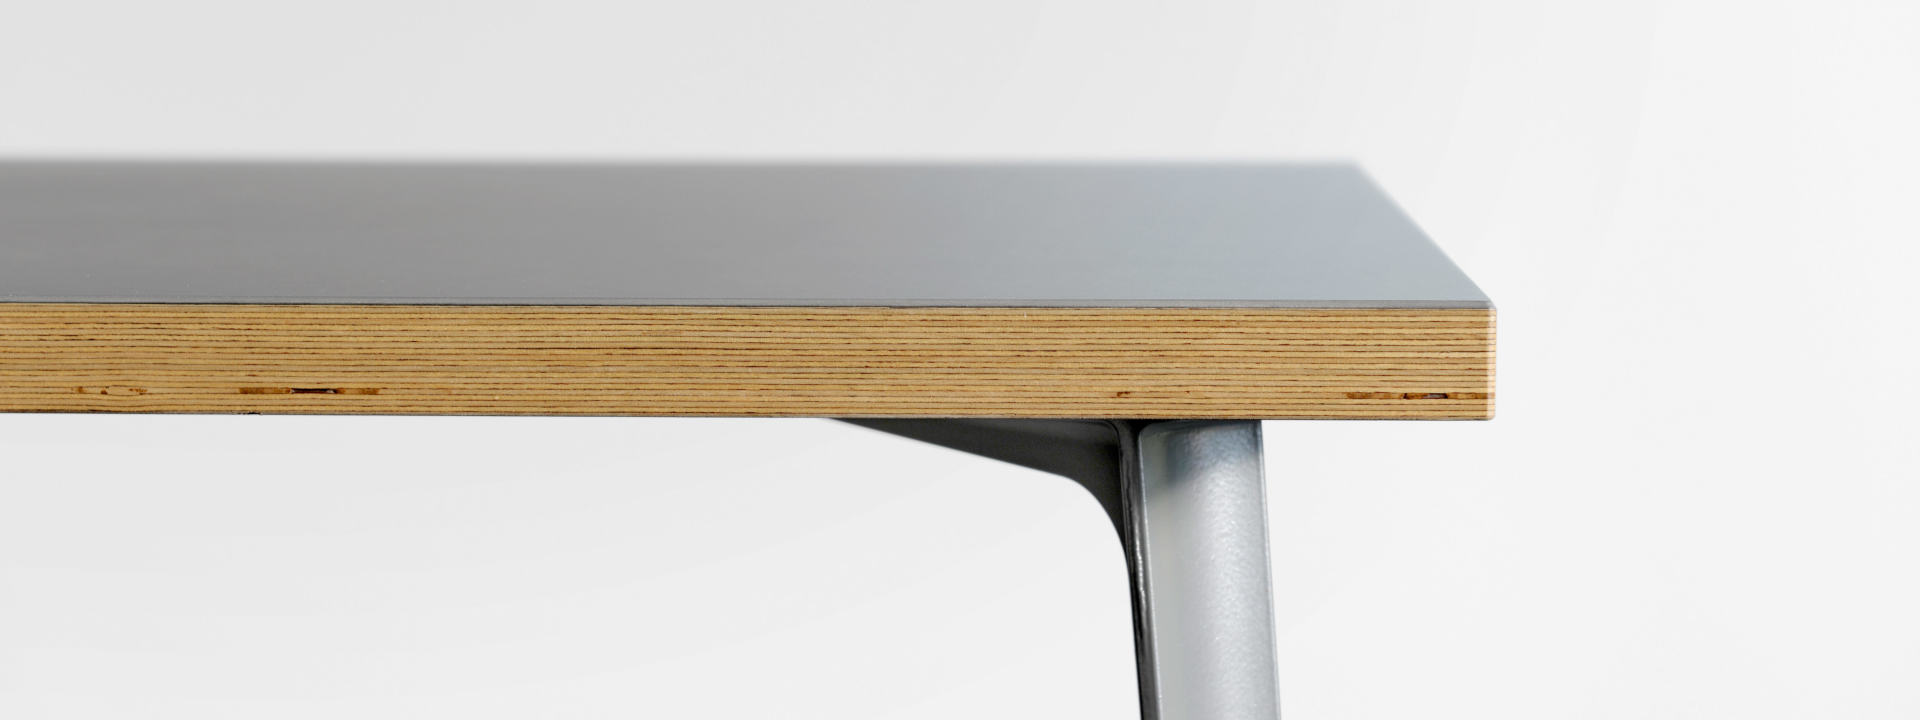 Canteen Legs, Table Frames, Table bases, Table base, Table legs